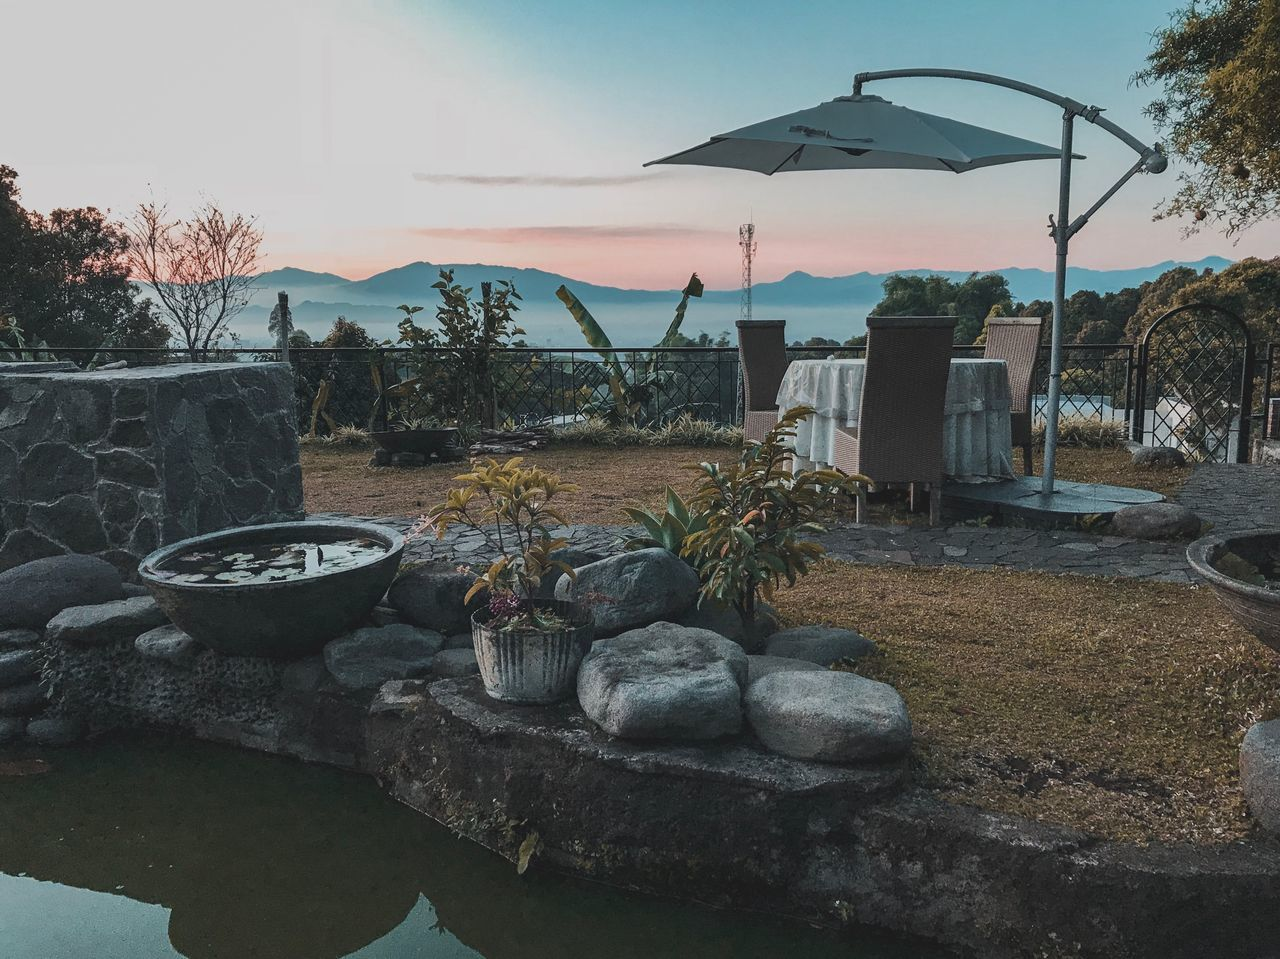 plant, sky, tree, nature, no people, solid, water, sunset, rock, day, outdoors, umbrella, land, rock - object, architecture, beauty in nature, tranquility, front or back yard